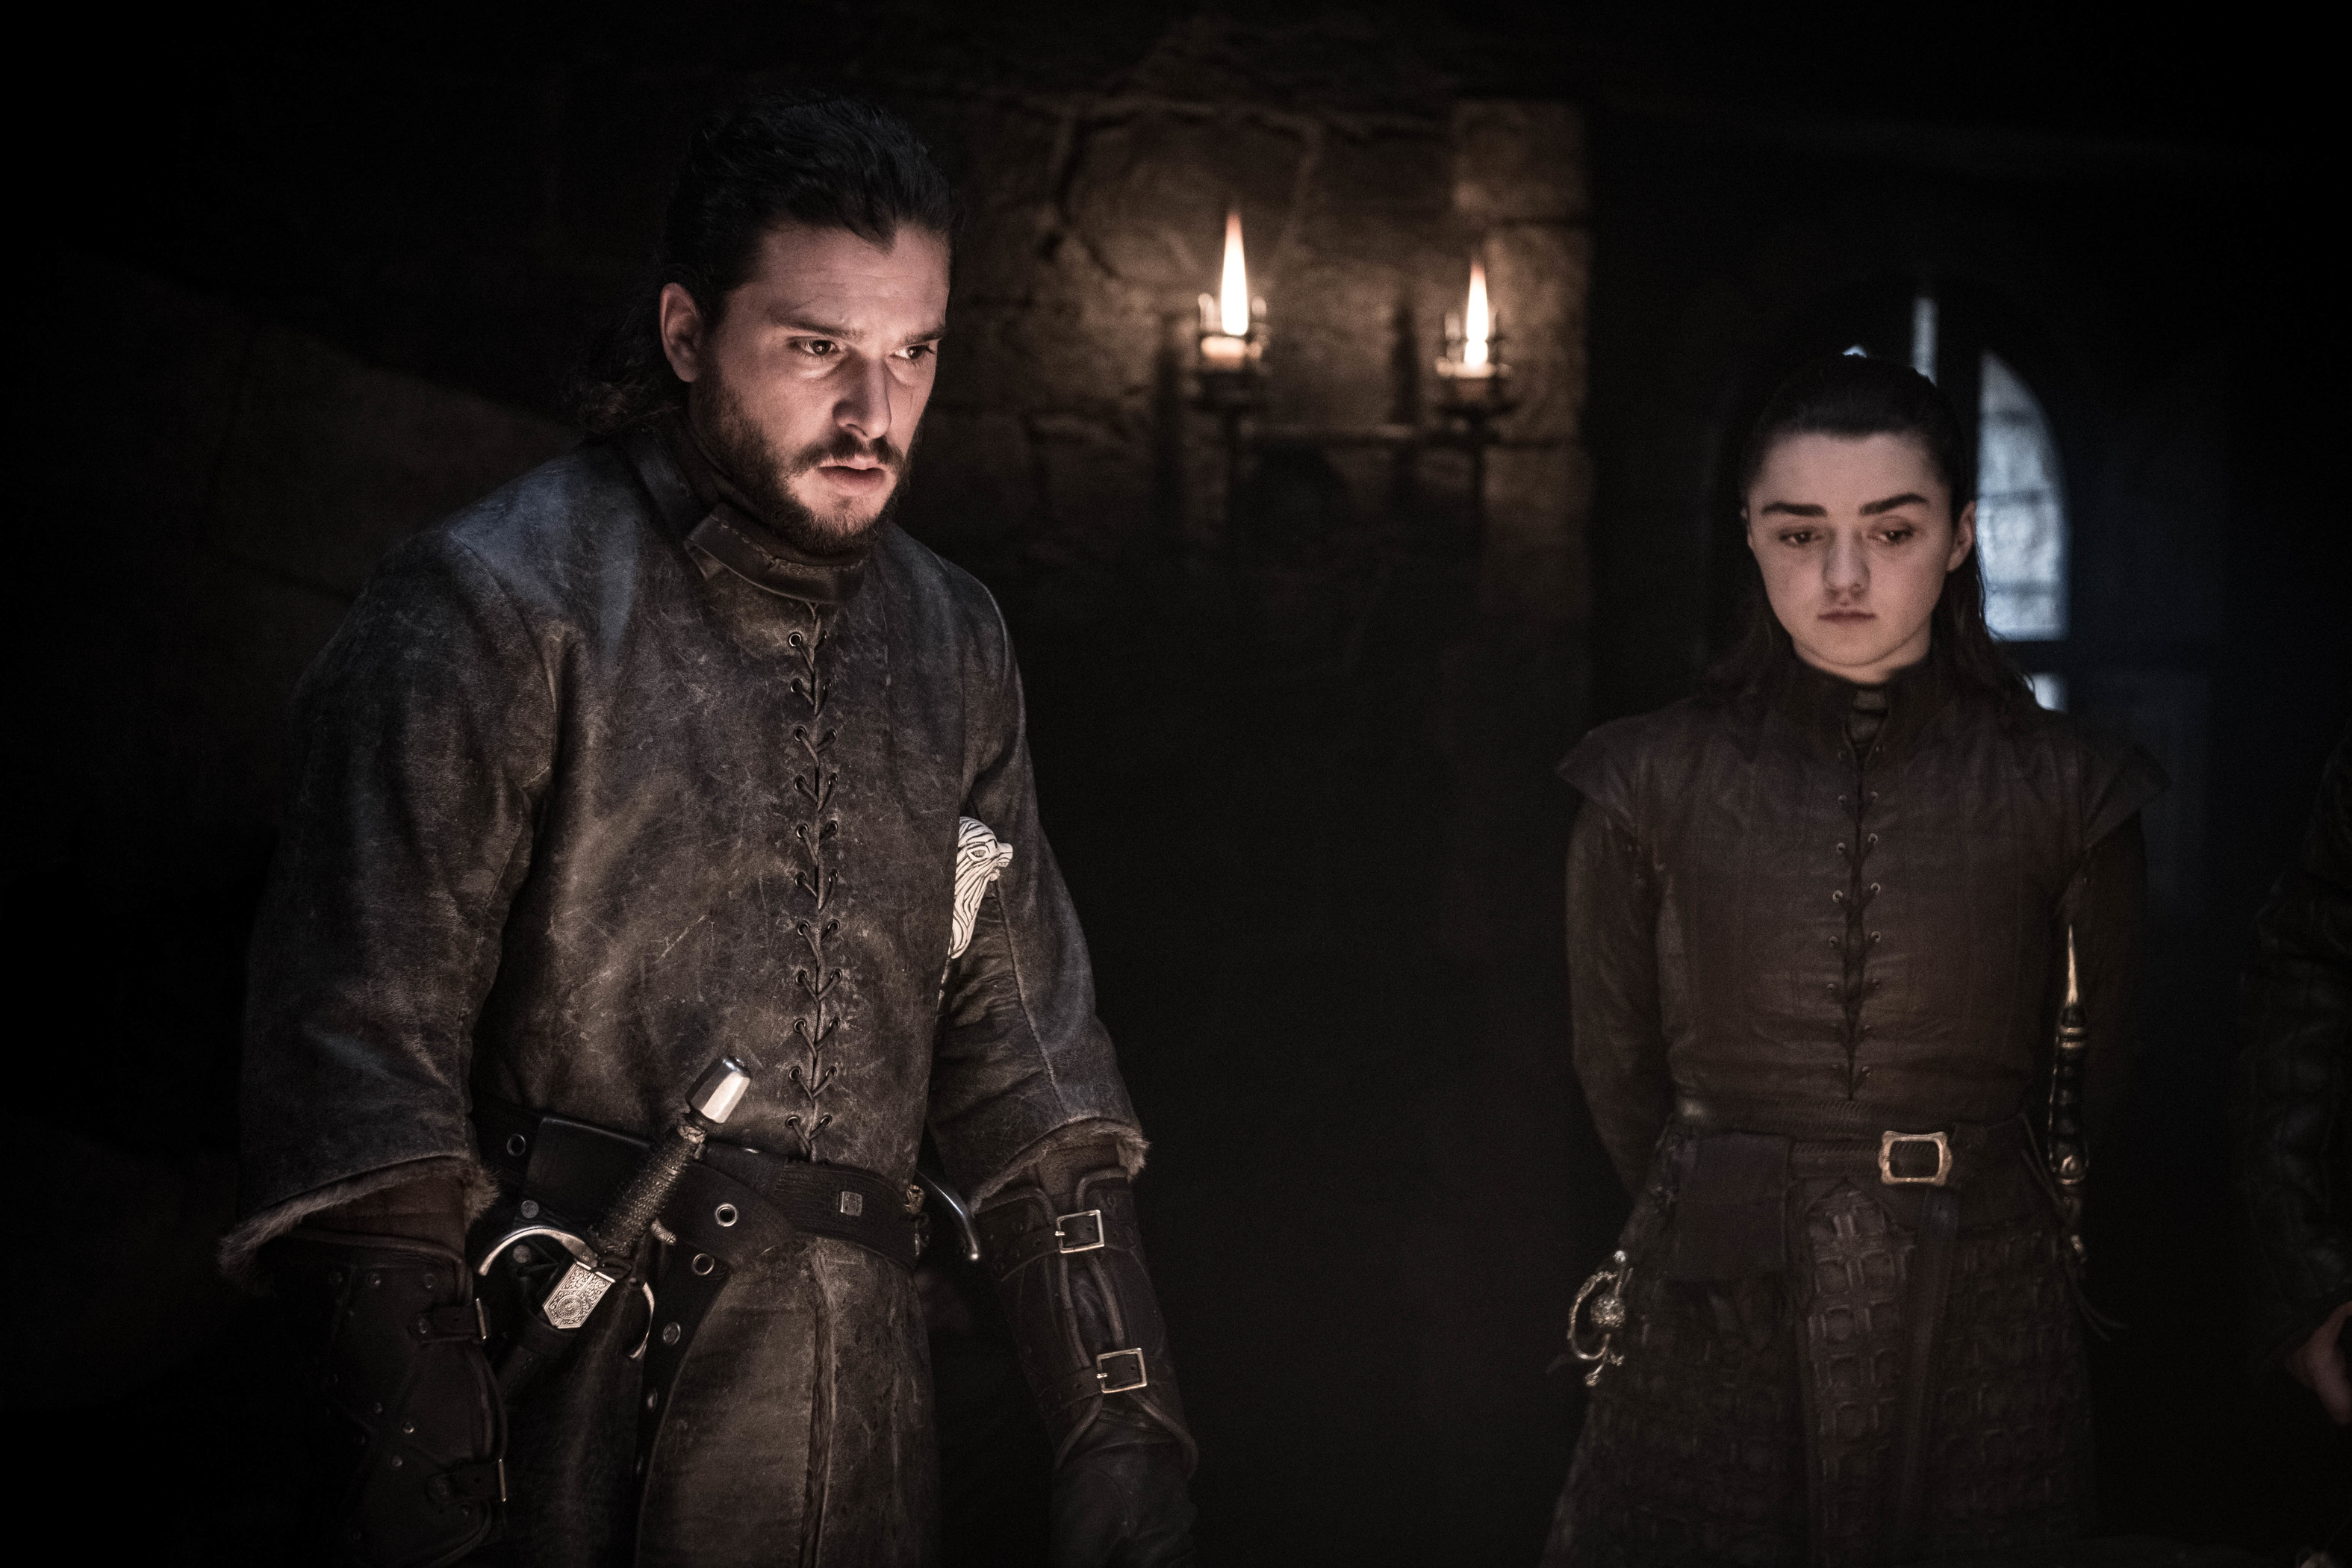 Kit Harington as Jon Snow and Maisie Williams as Arya Stark.